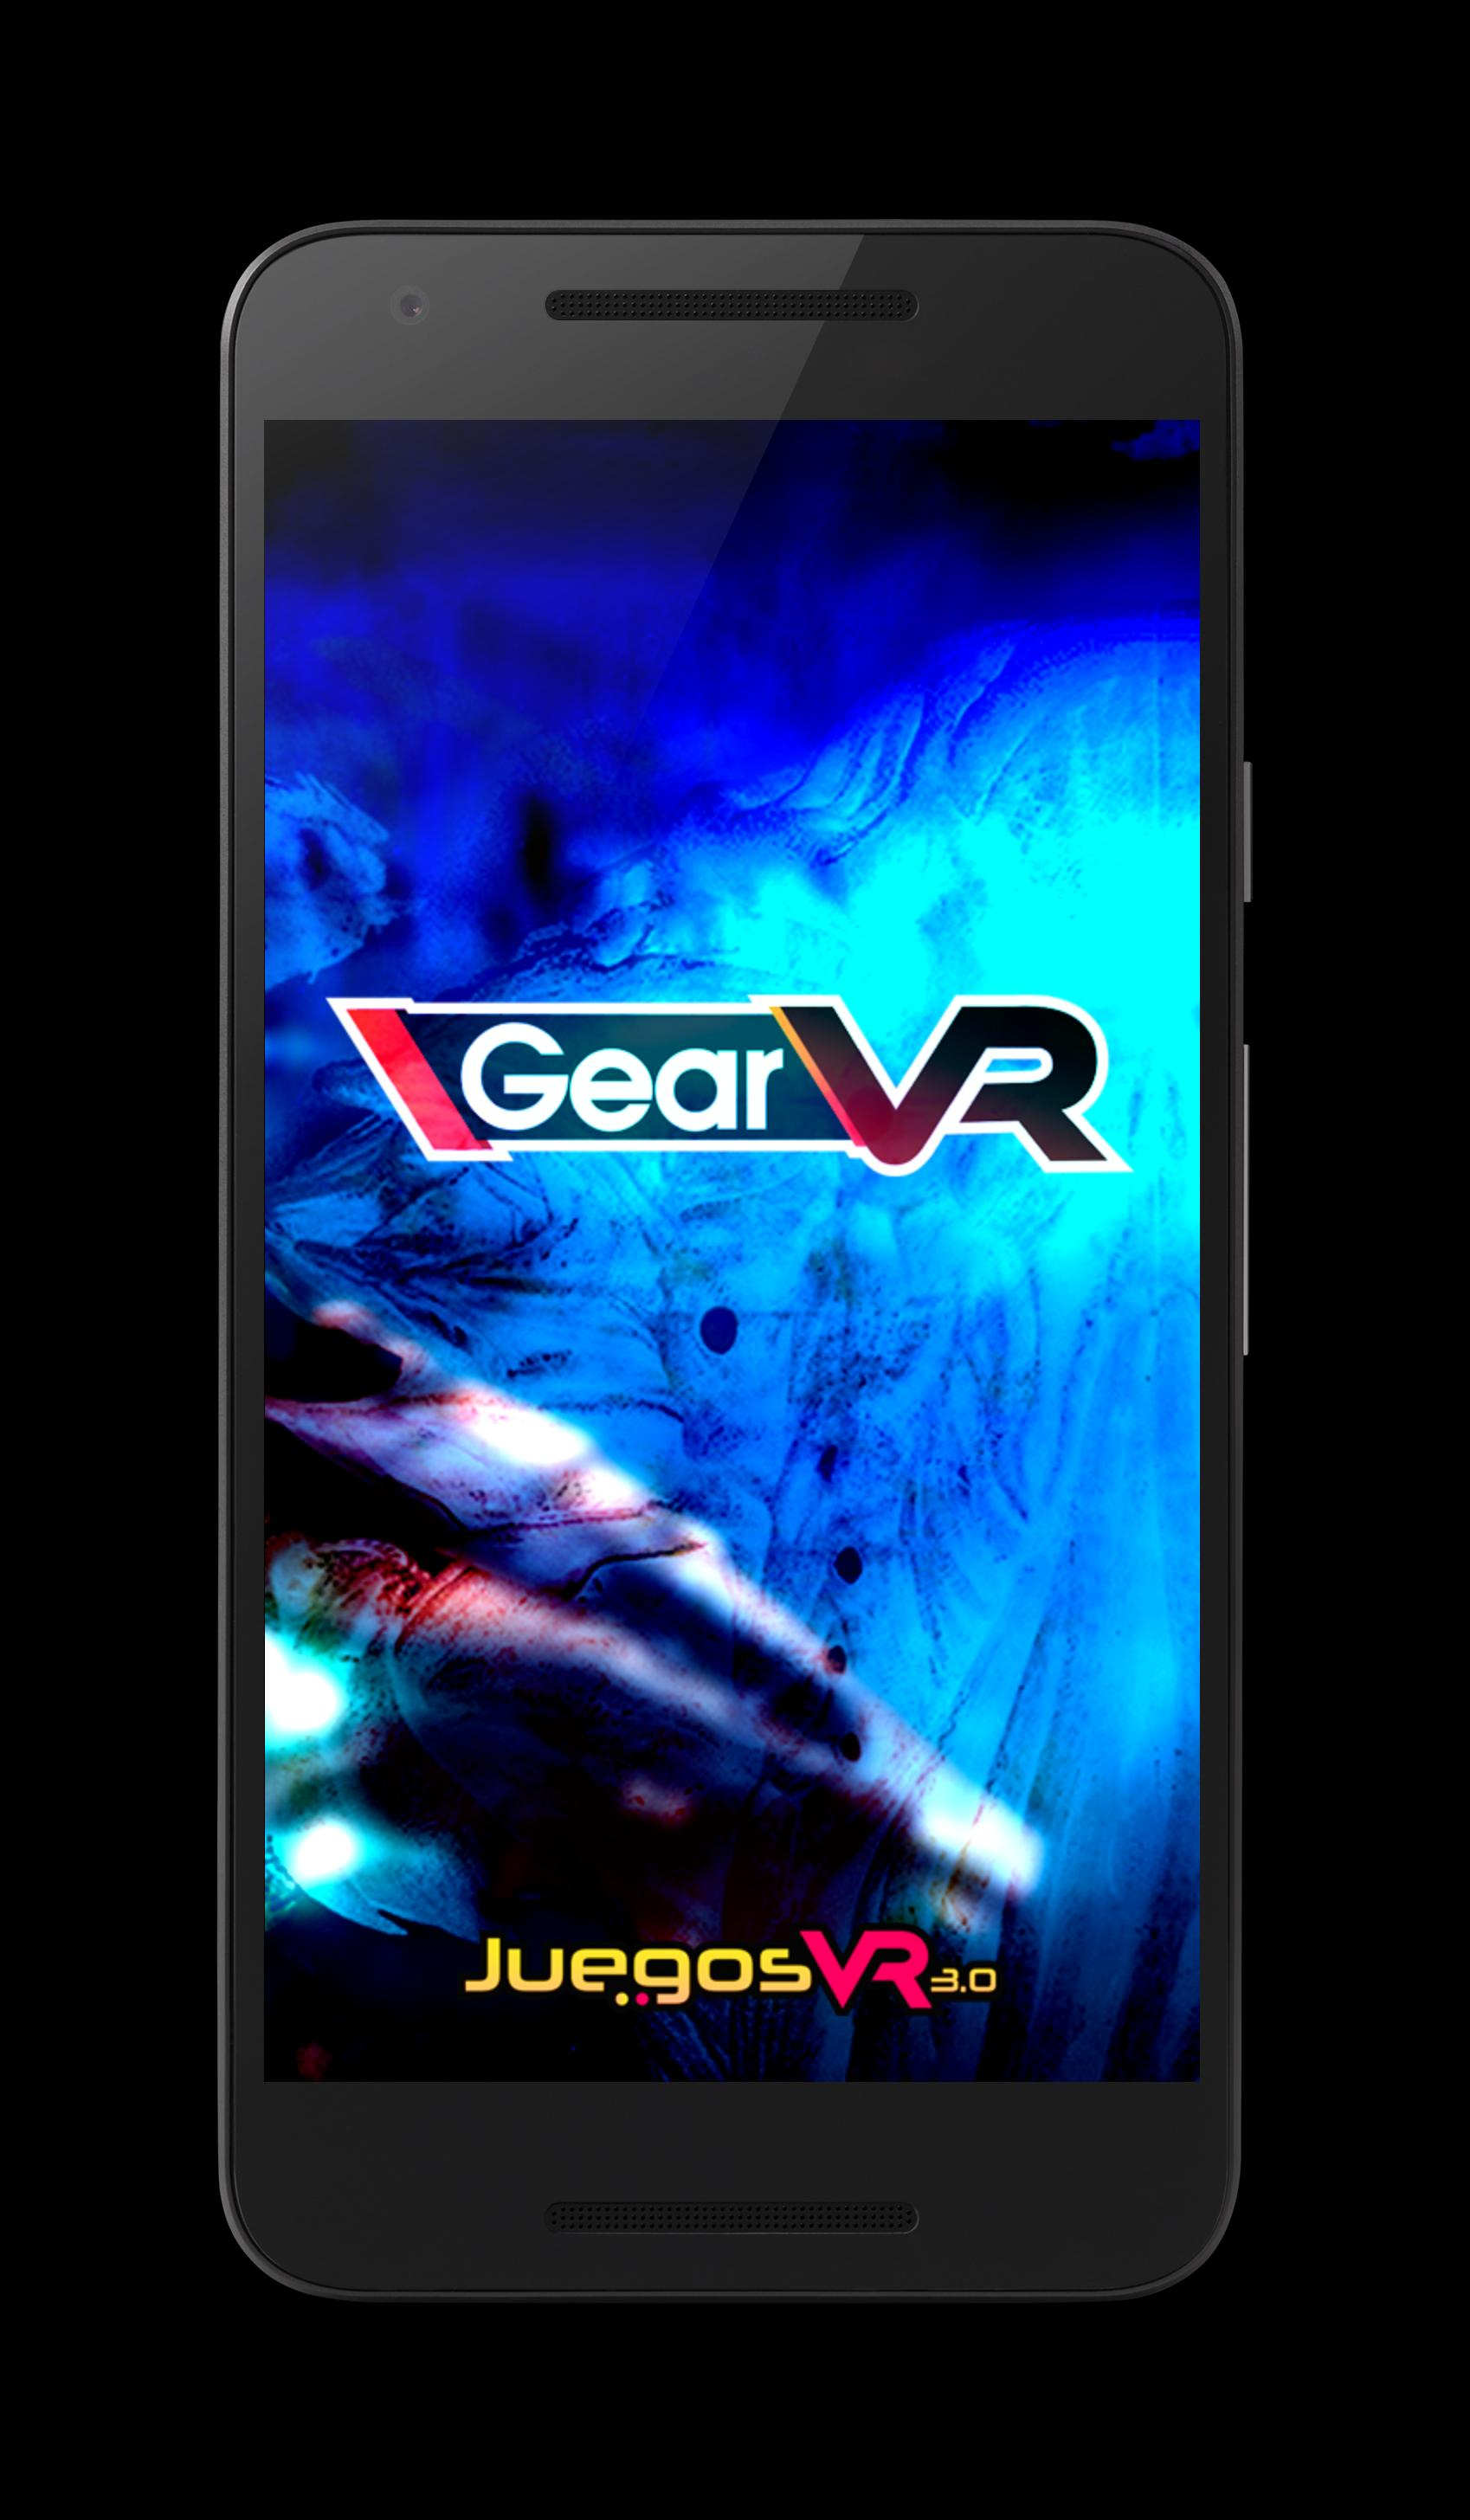 Games for Gear VR 3 0 for Android - APK Download